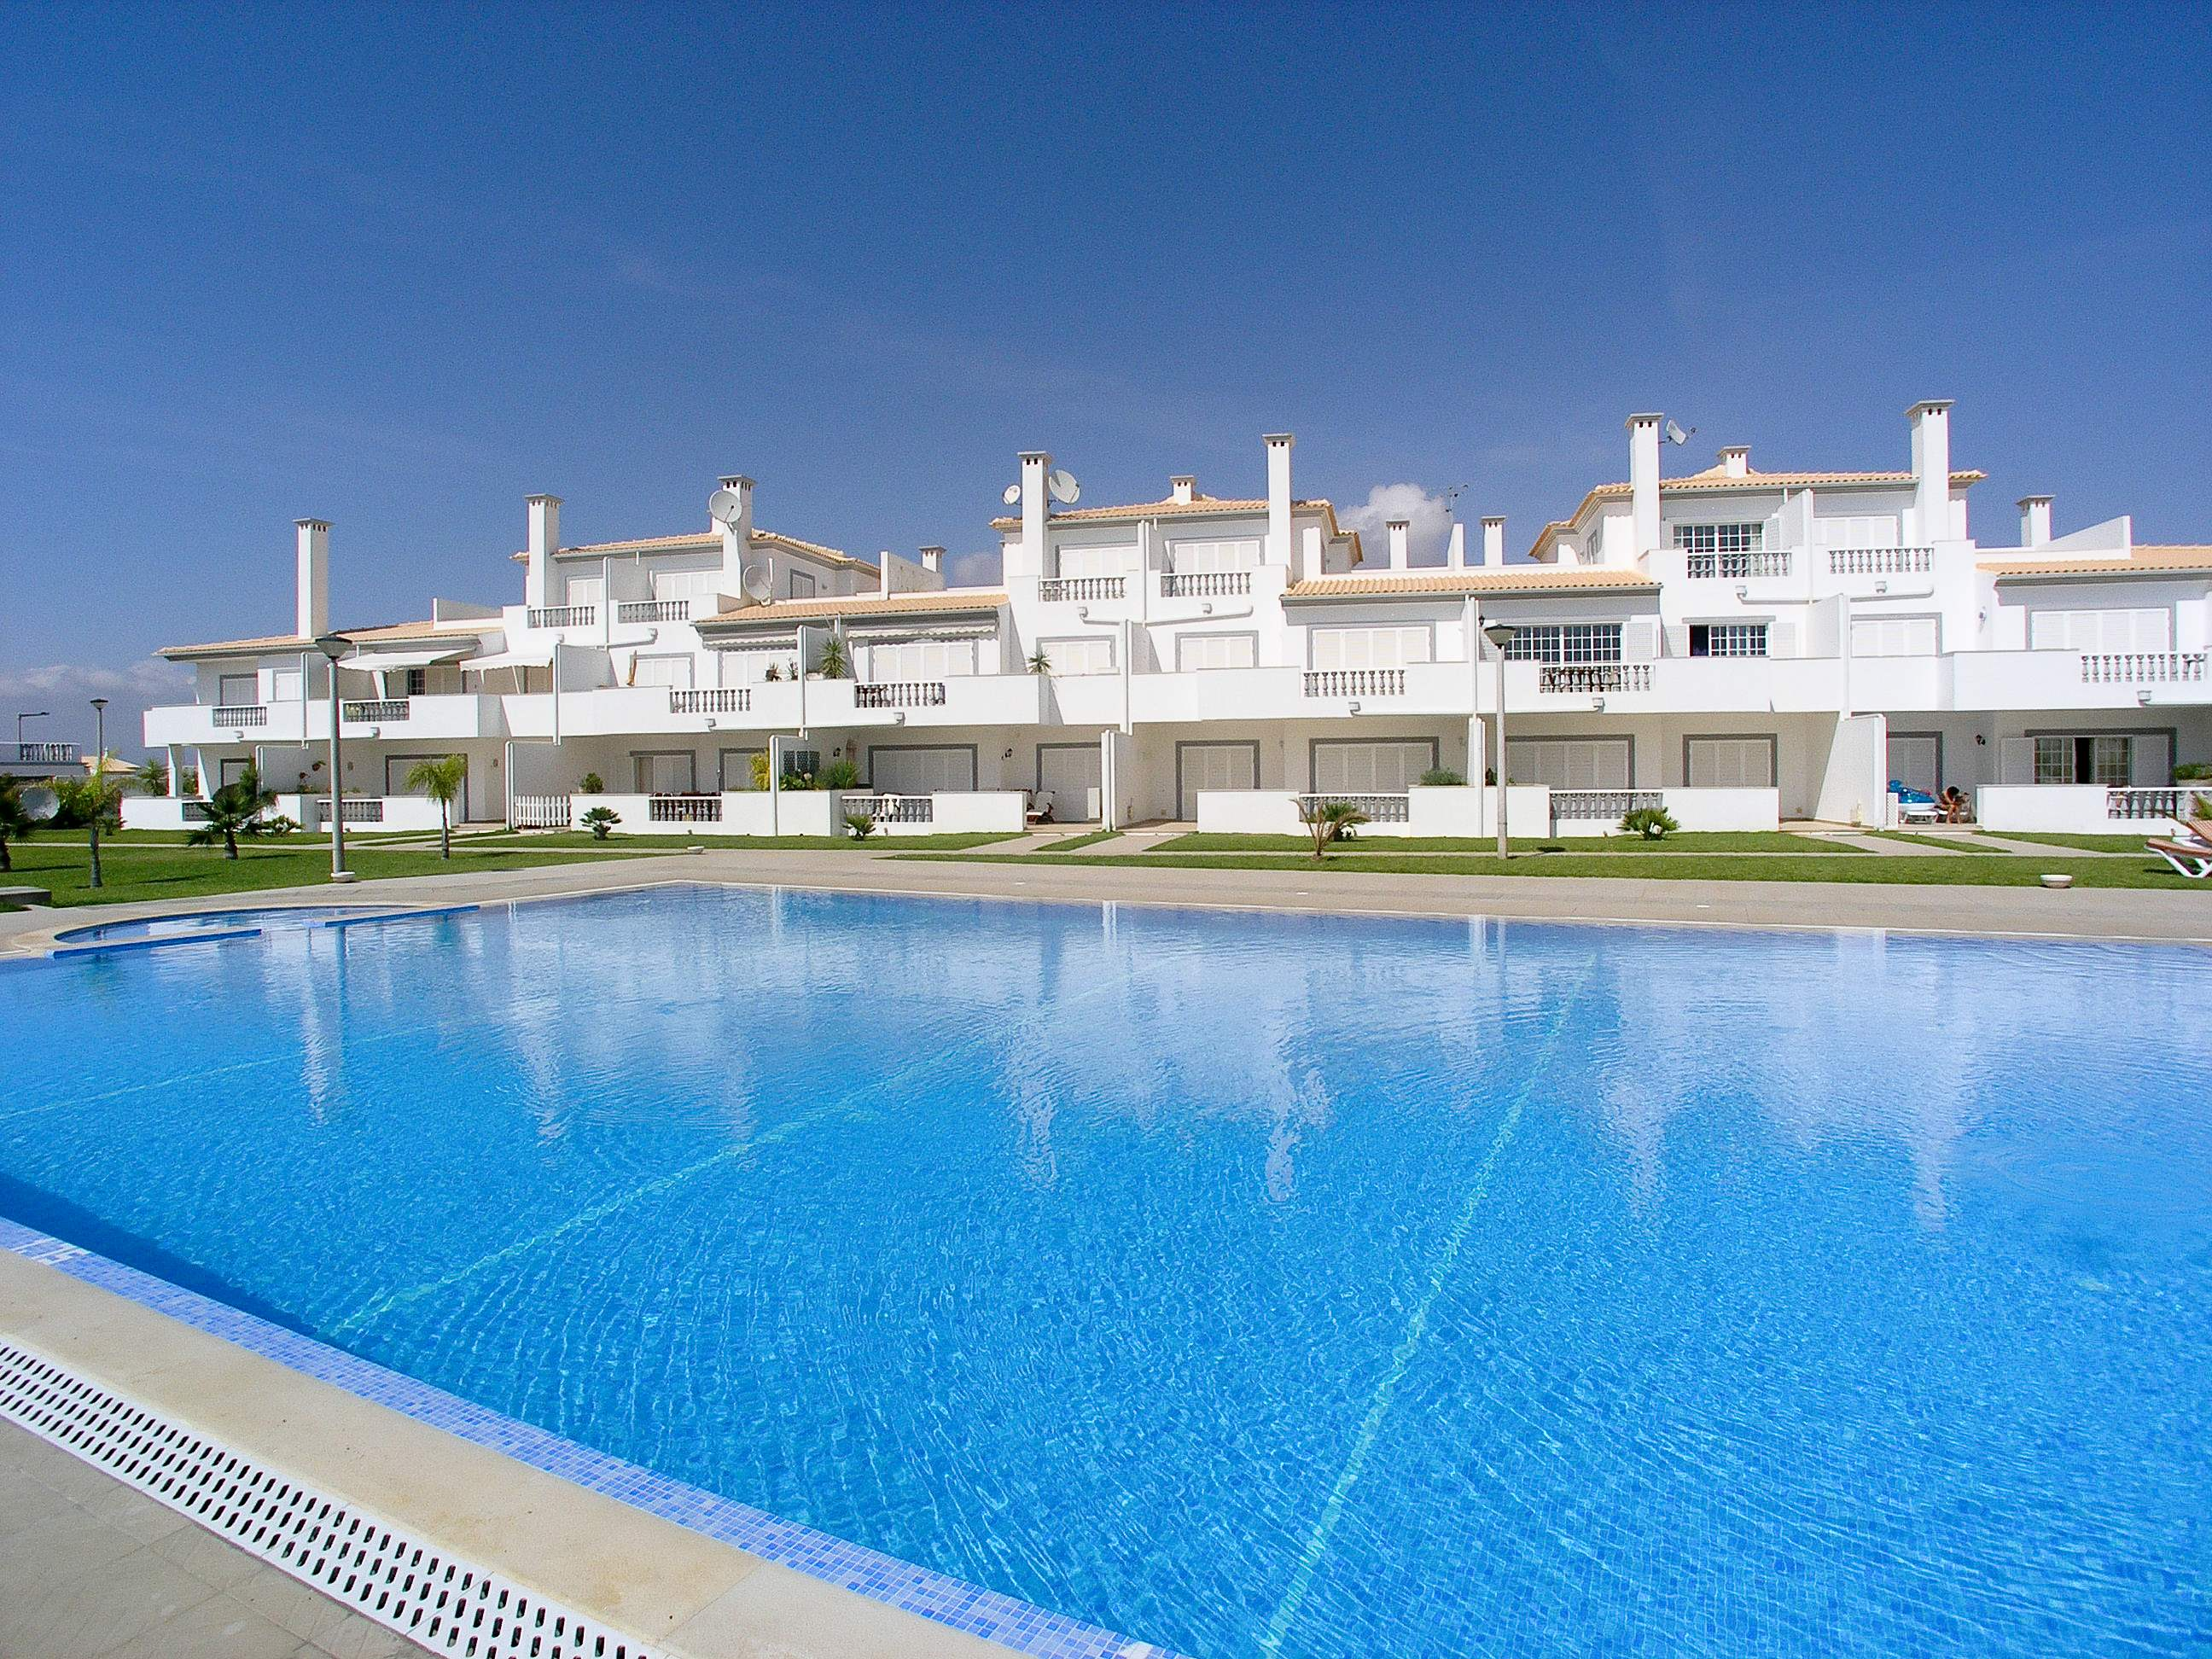 Apt O Monte, Up to 6 Persons, 3 bedroom apartment in Gale, Vale da Parra and Guia, Algarve Photo #1